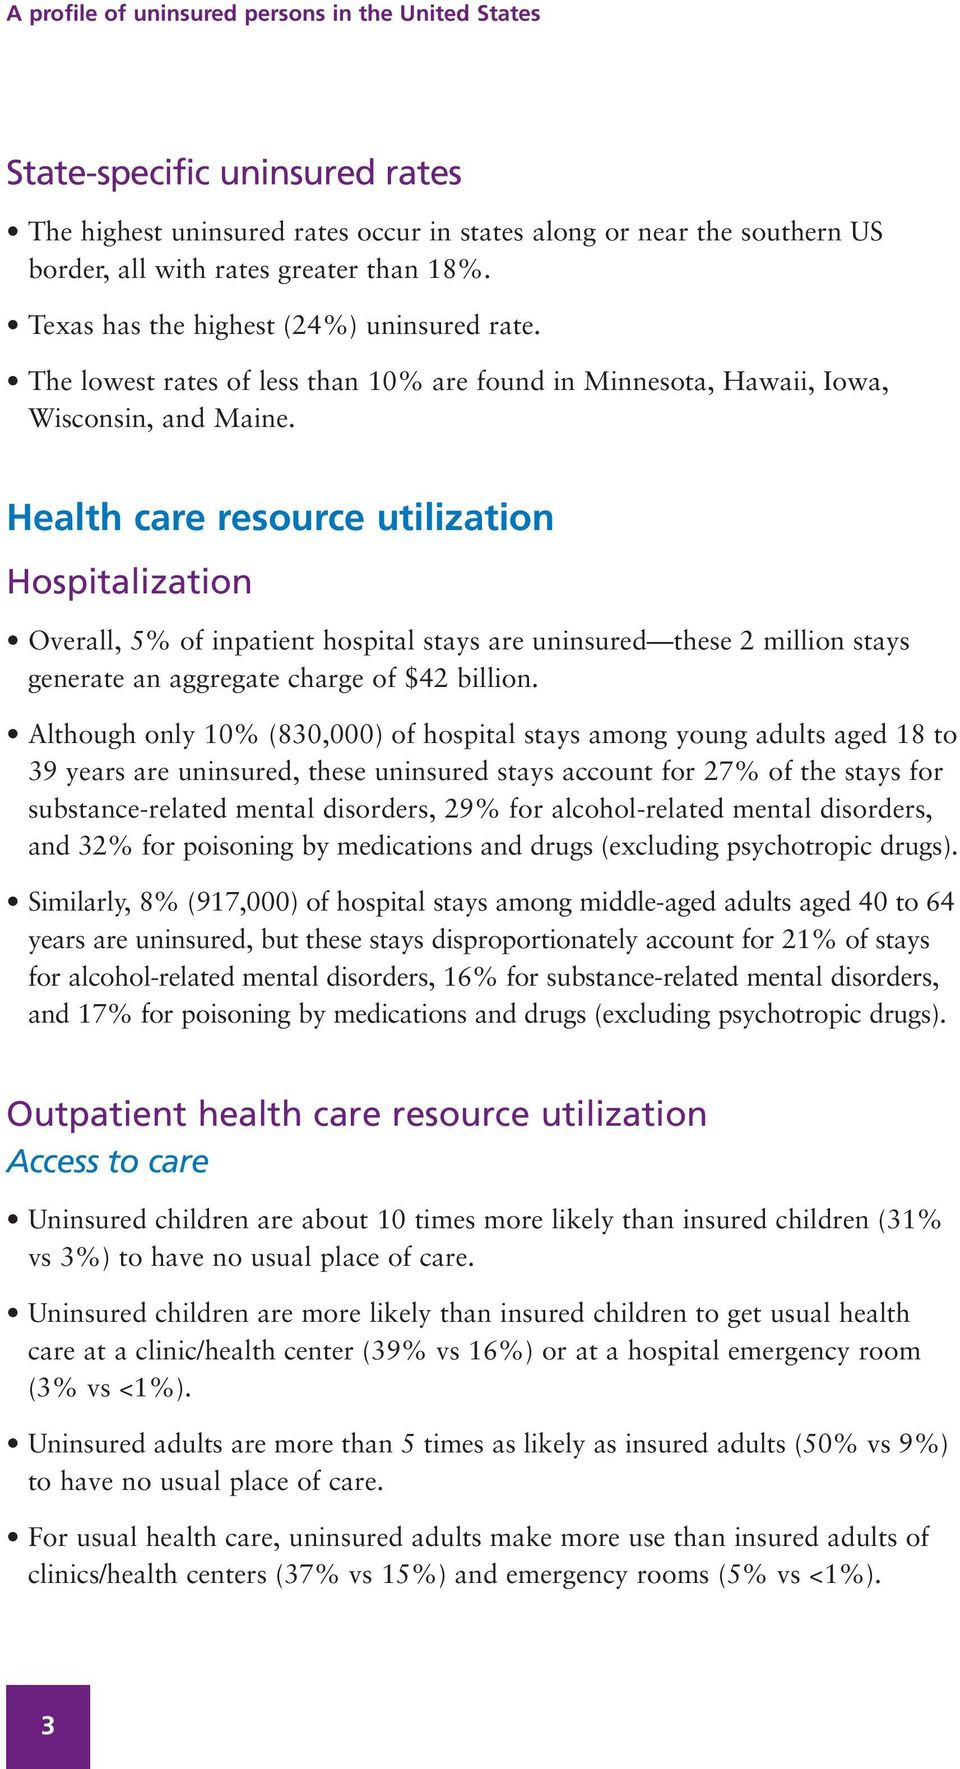 Health care resource utilization Hospitalization Overall, 5% of inpatient hospital stays are uninsured these 2 million stays generate an aggregate charge of $42 billion.